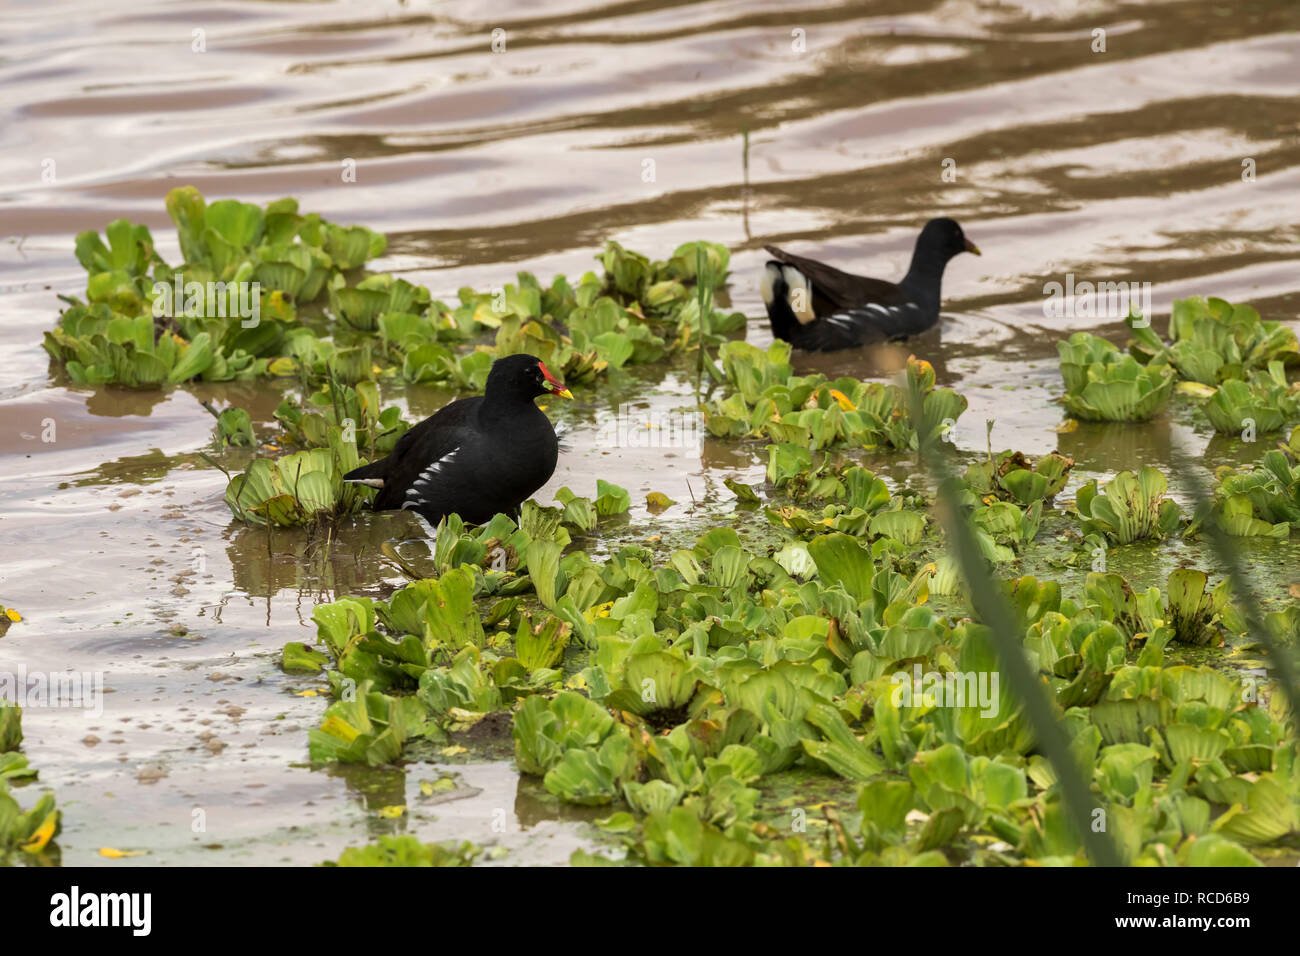 Common Moorhen (Gallinula chloropus) in search of a meal in Lake Manyara National Park, Tanzania - Stock Image